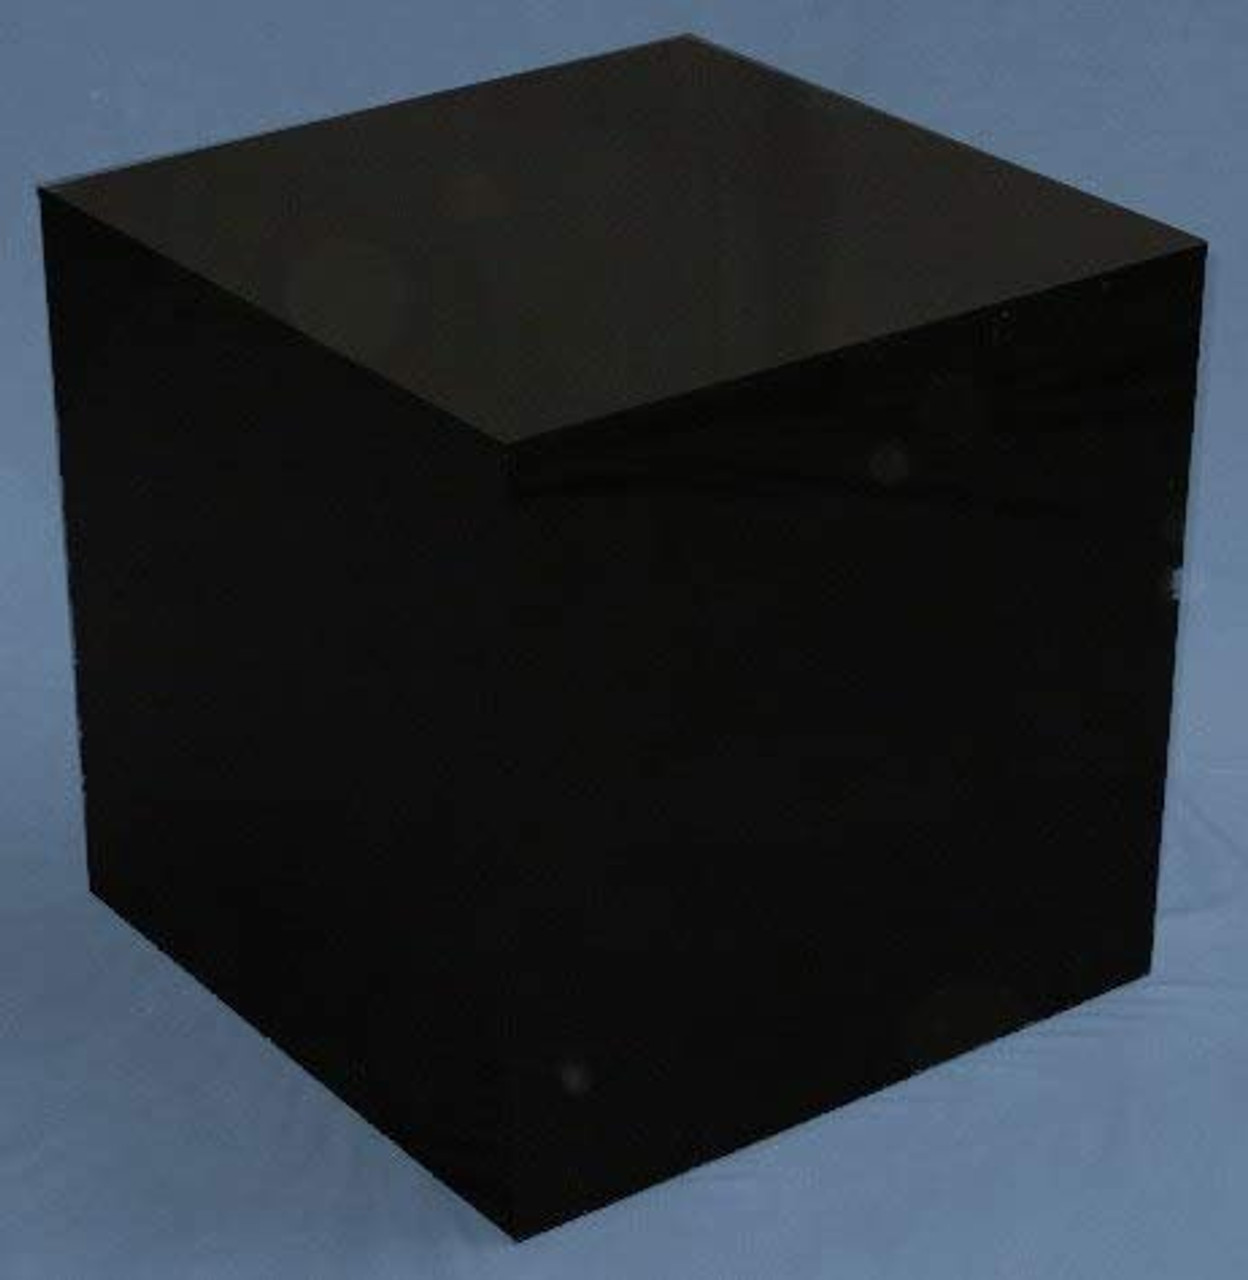 Black Large Square Acrylic Display Cube, 16 Inch